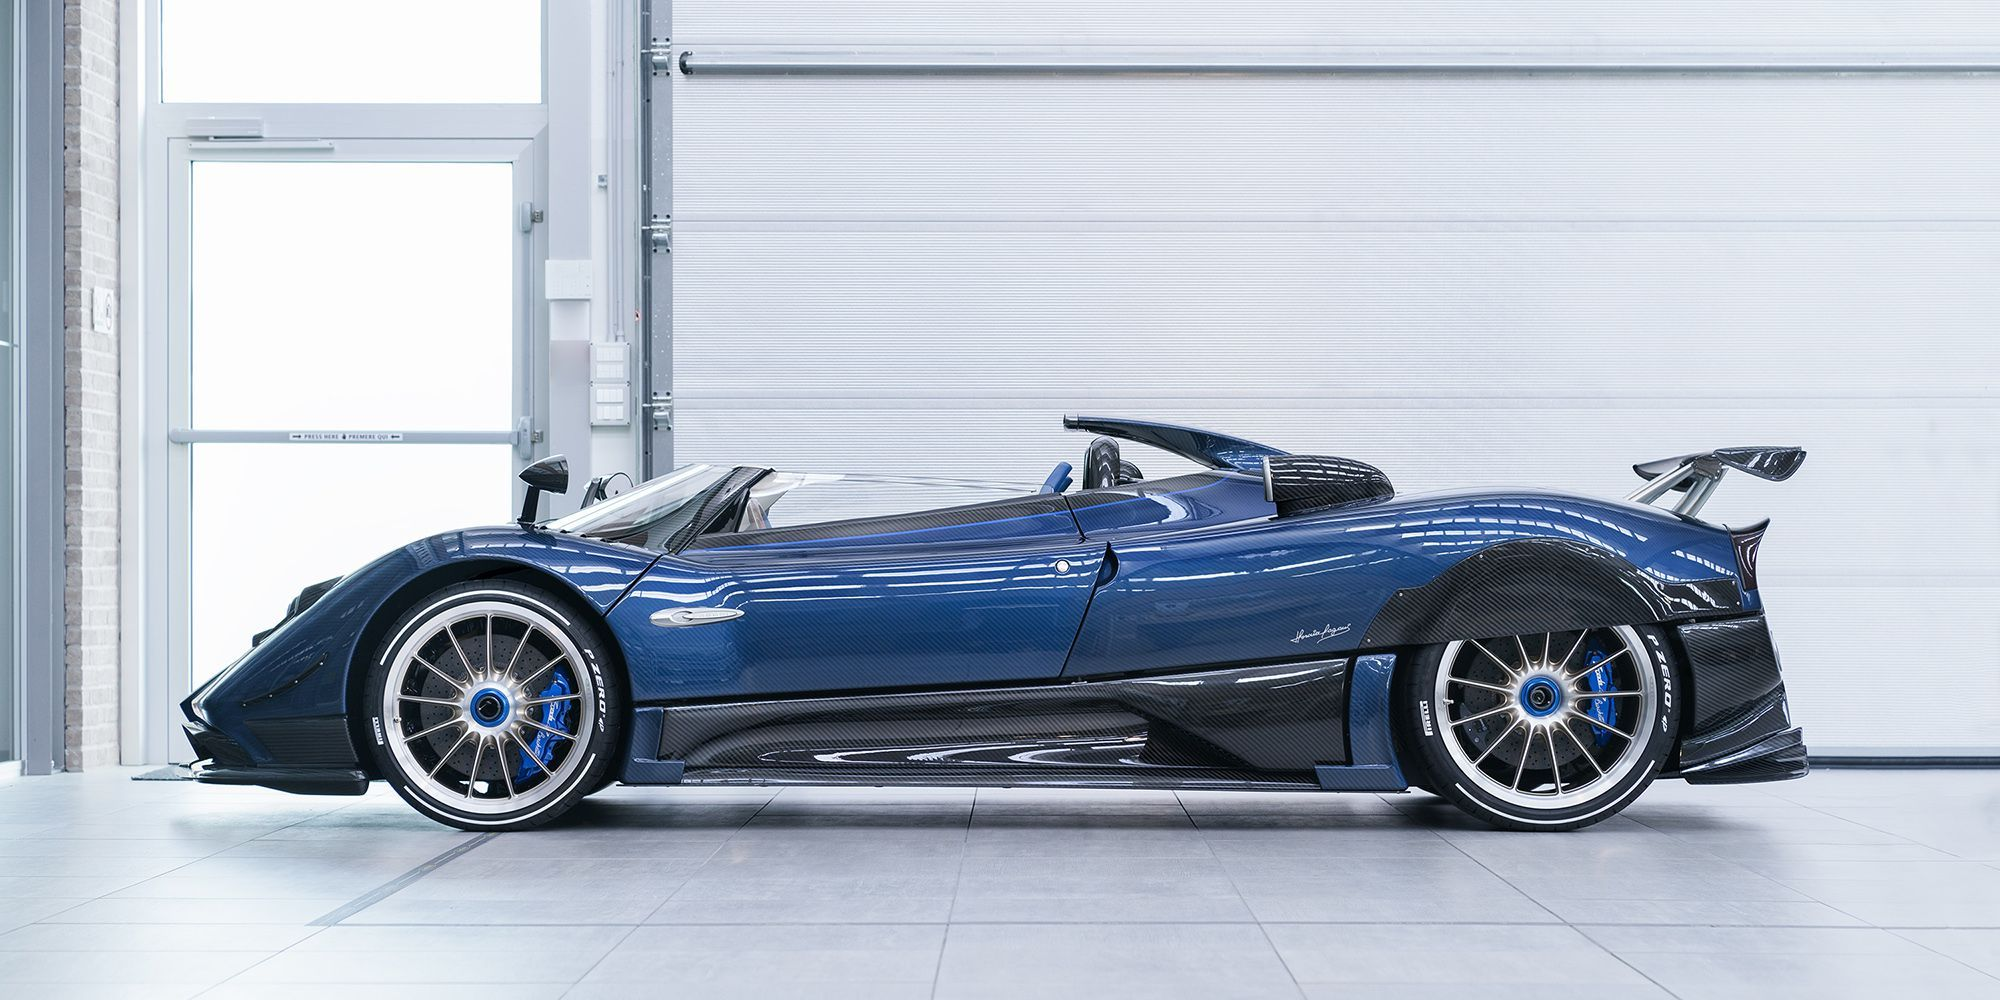 pagani zonda hp barchetta hd